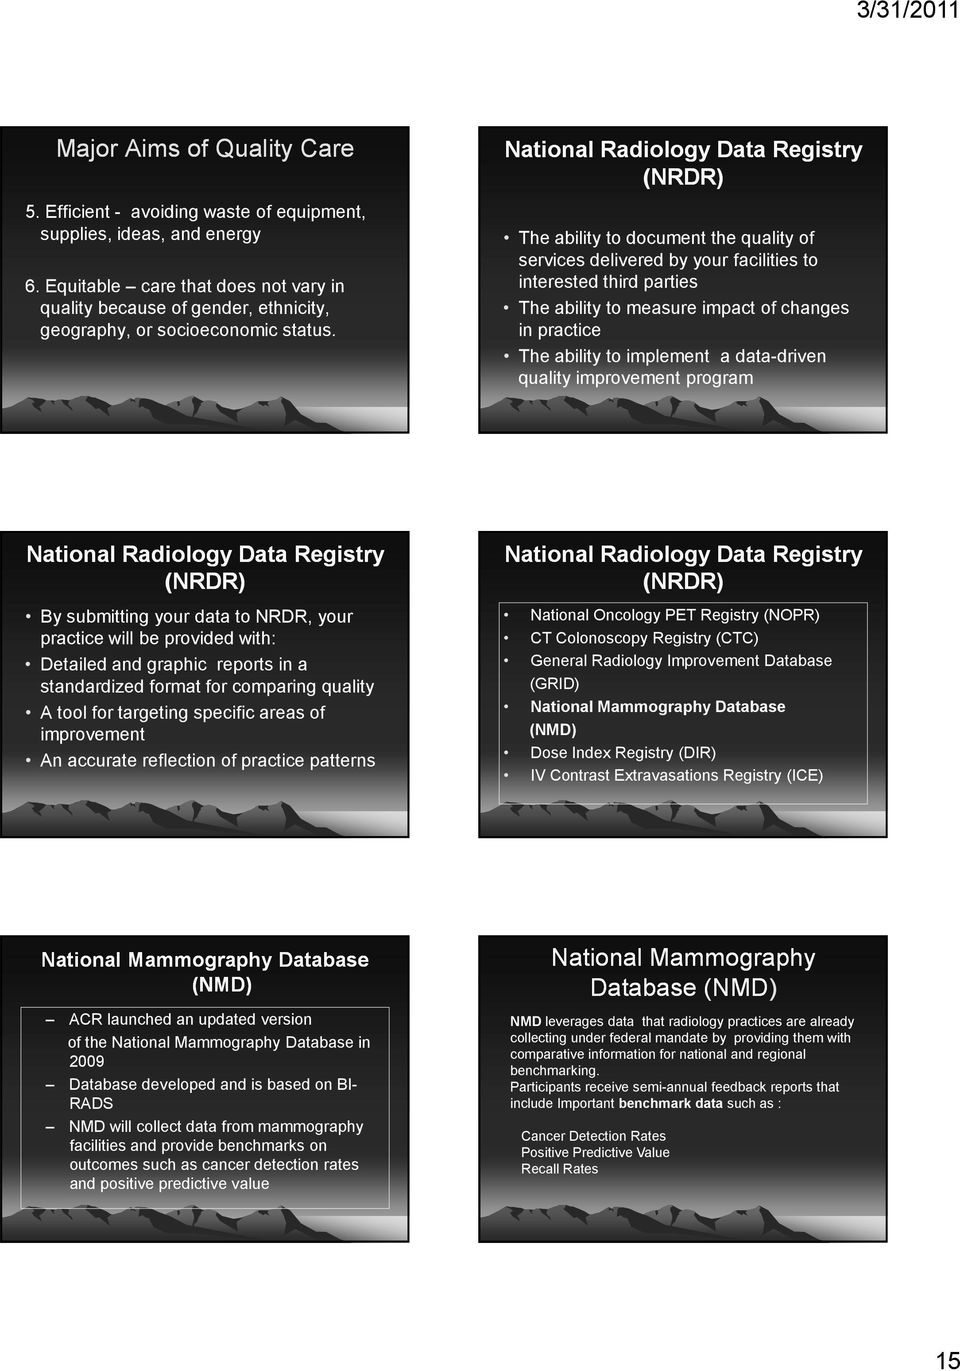 National Radiology Data Registry (NRDR) The ability to document the quality of services delivered by your facilities to interested third parties The ability to measure impact of changes in practice